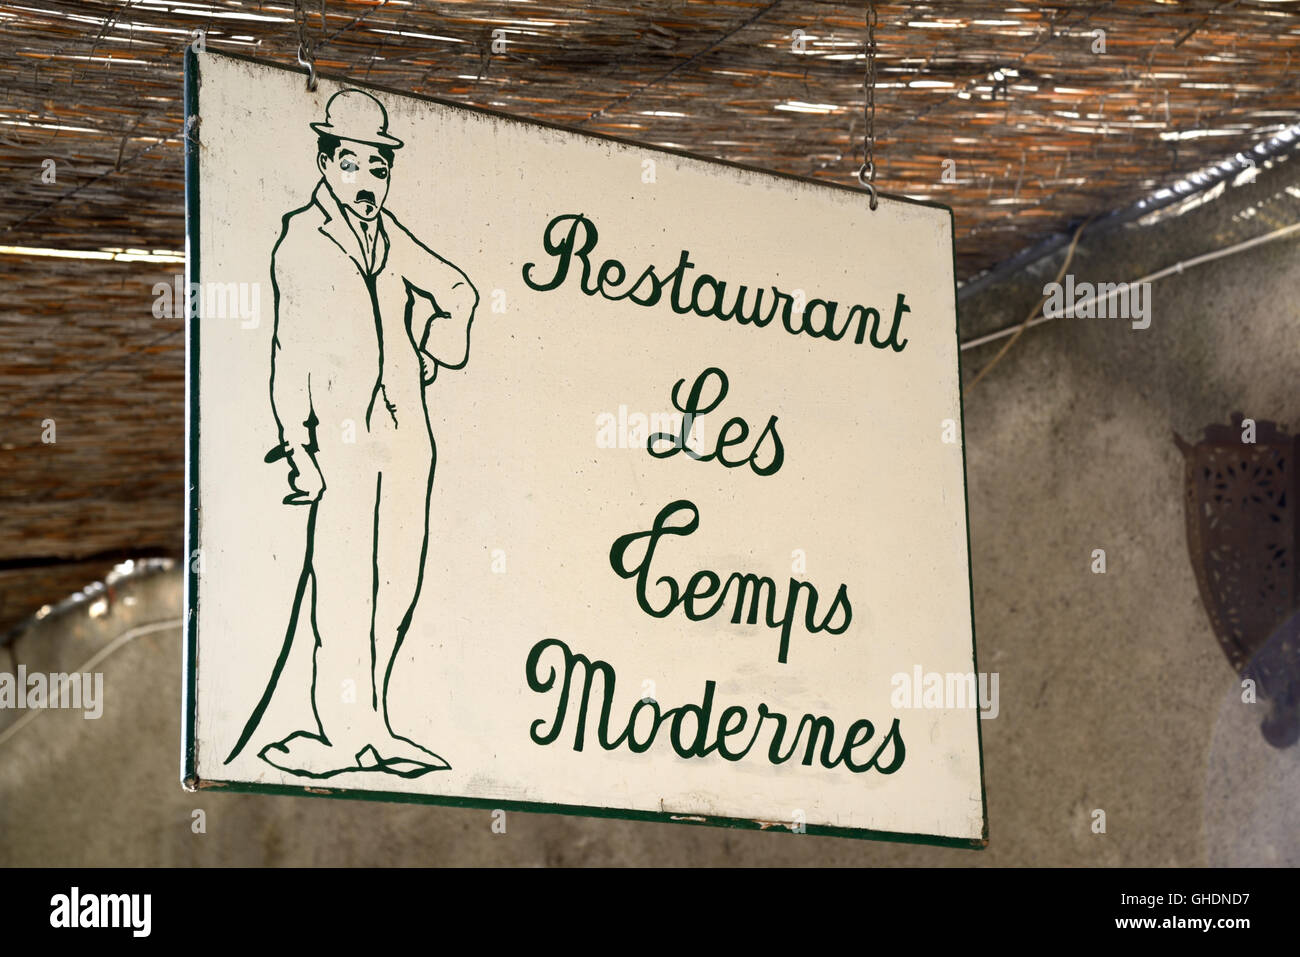 Sign for Charlie Chaplin Restaurant 'Modern Times' or 'Les Temps Modernes' Cucuron Luberon Provence - Stock Image